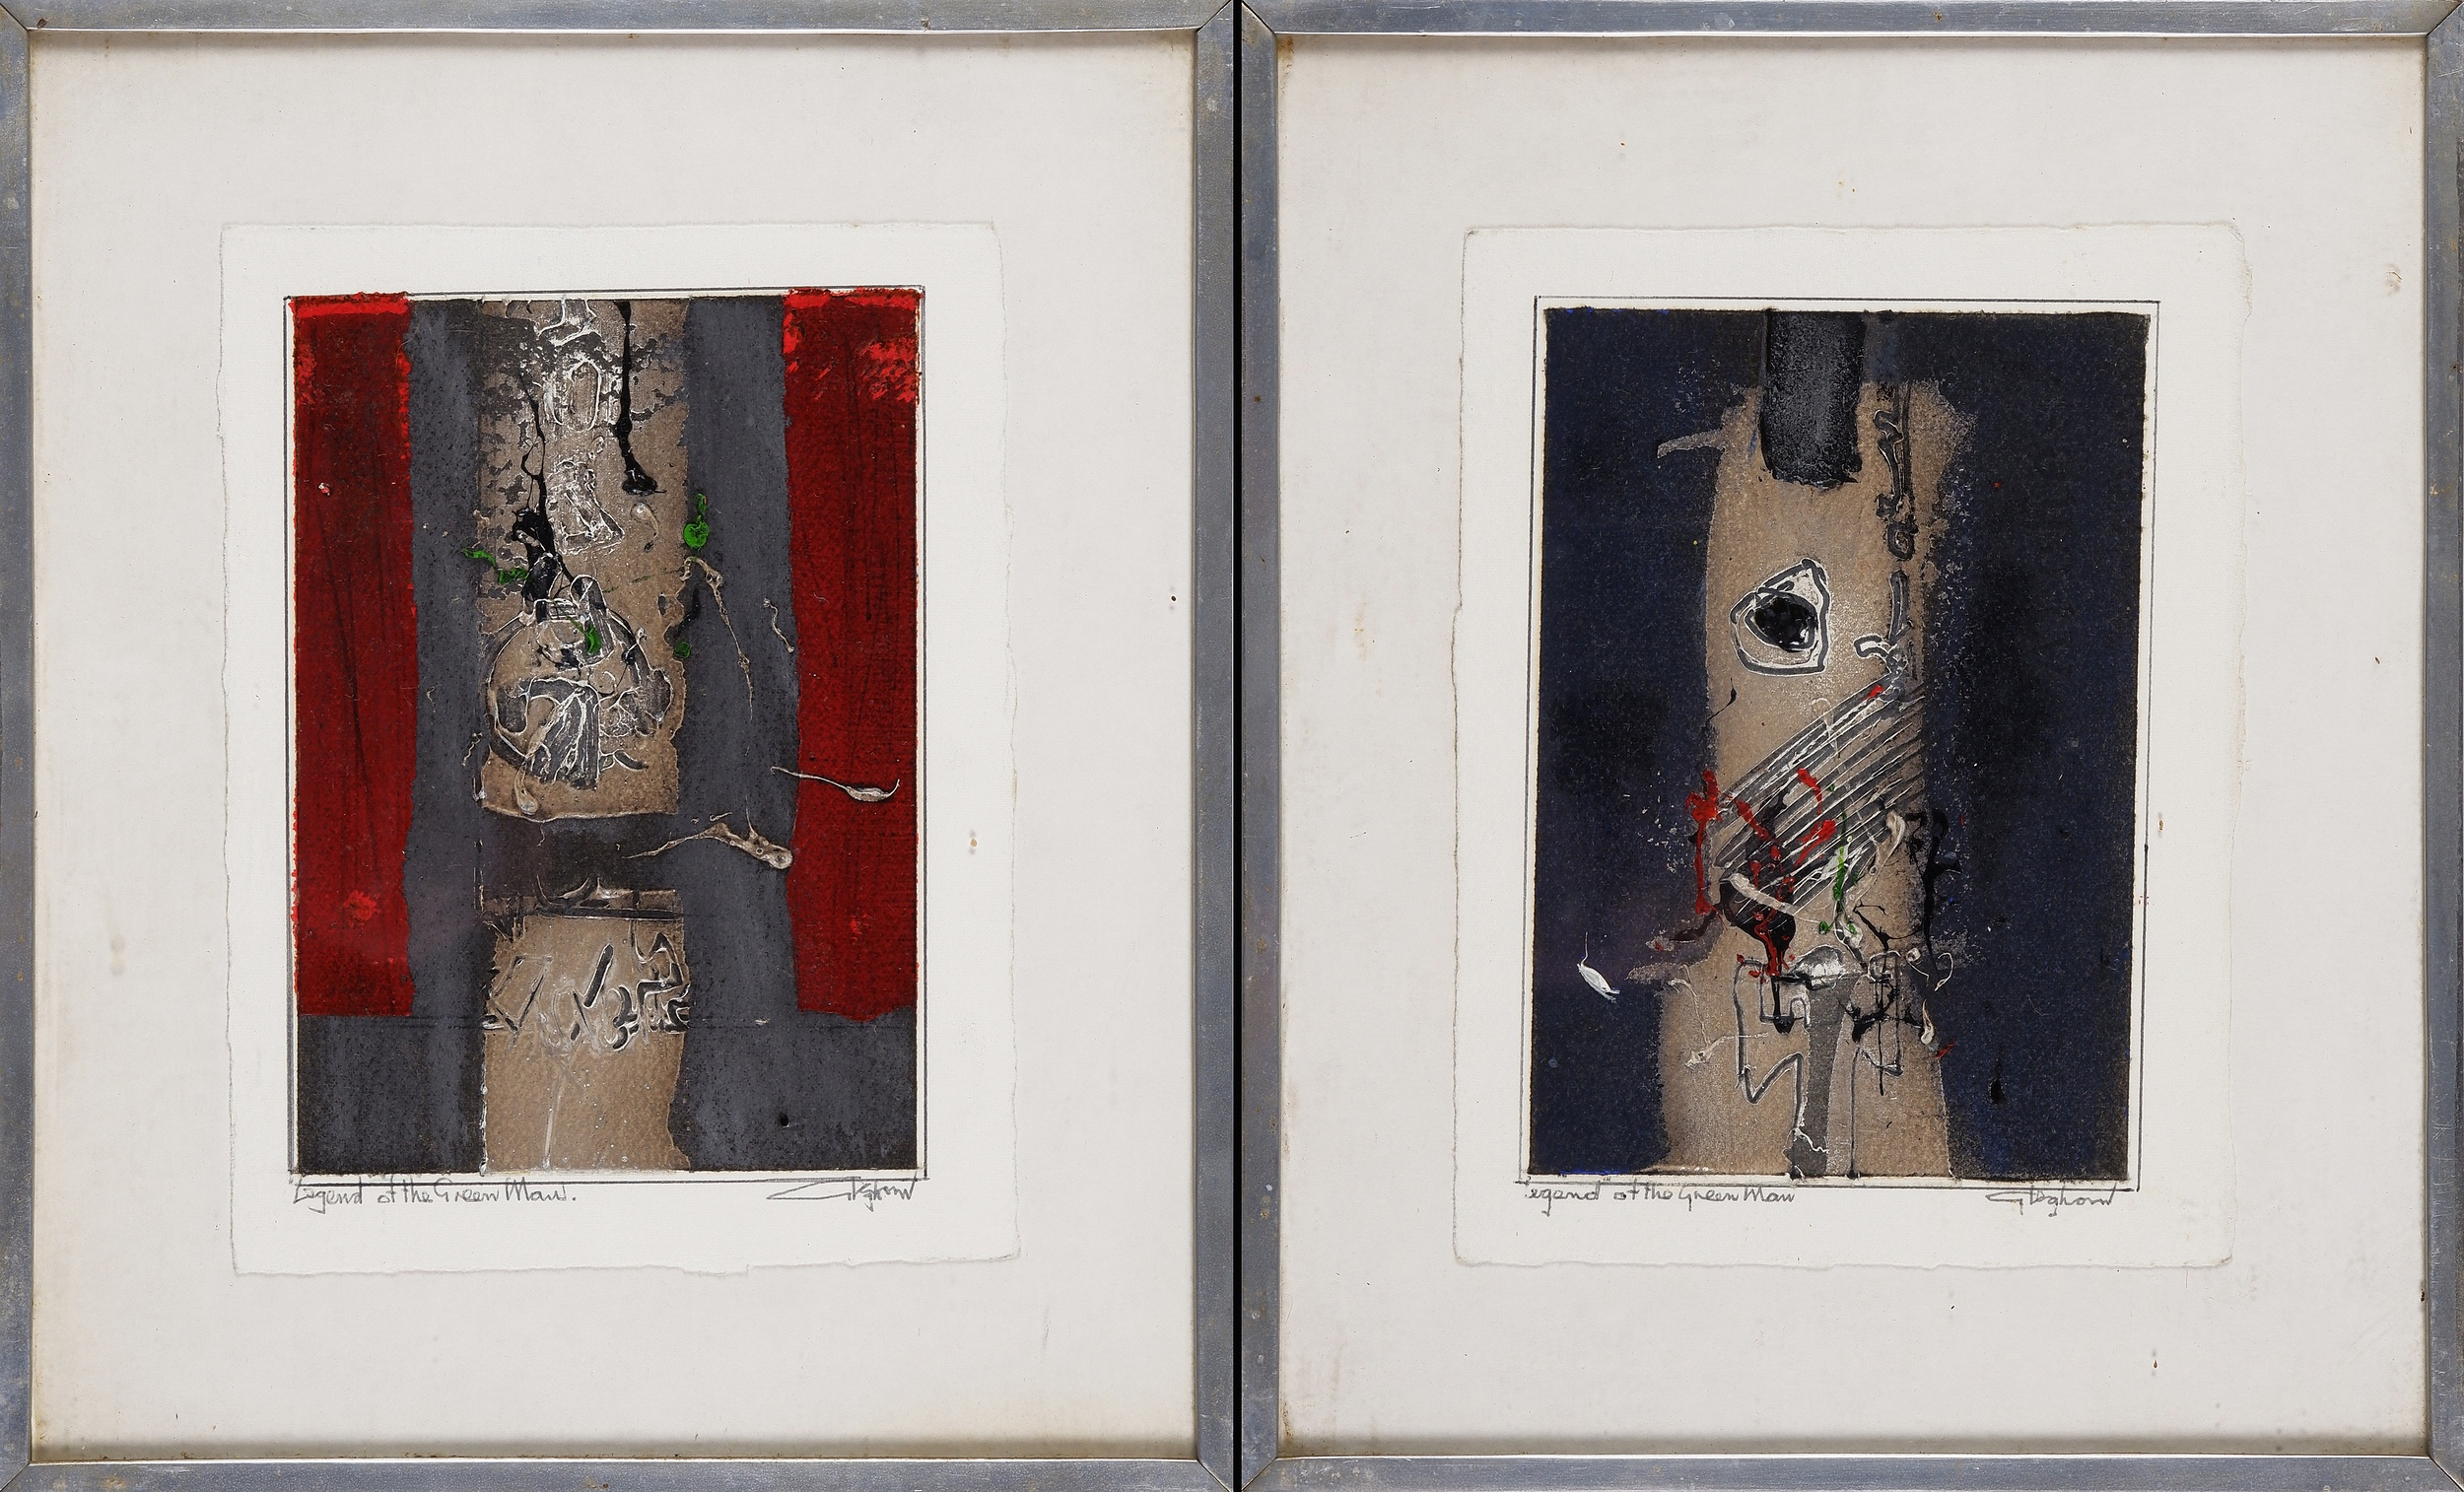 'Thomas Gleghorn (born 1925), Legend of the Green Man (diptych), Mixed Media on Paper'